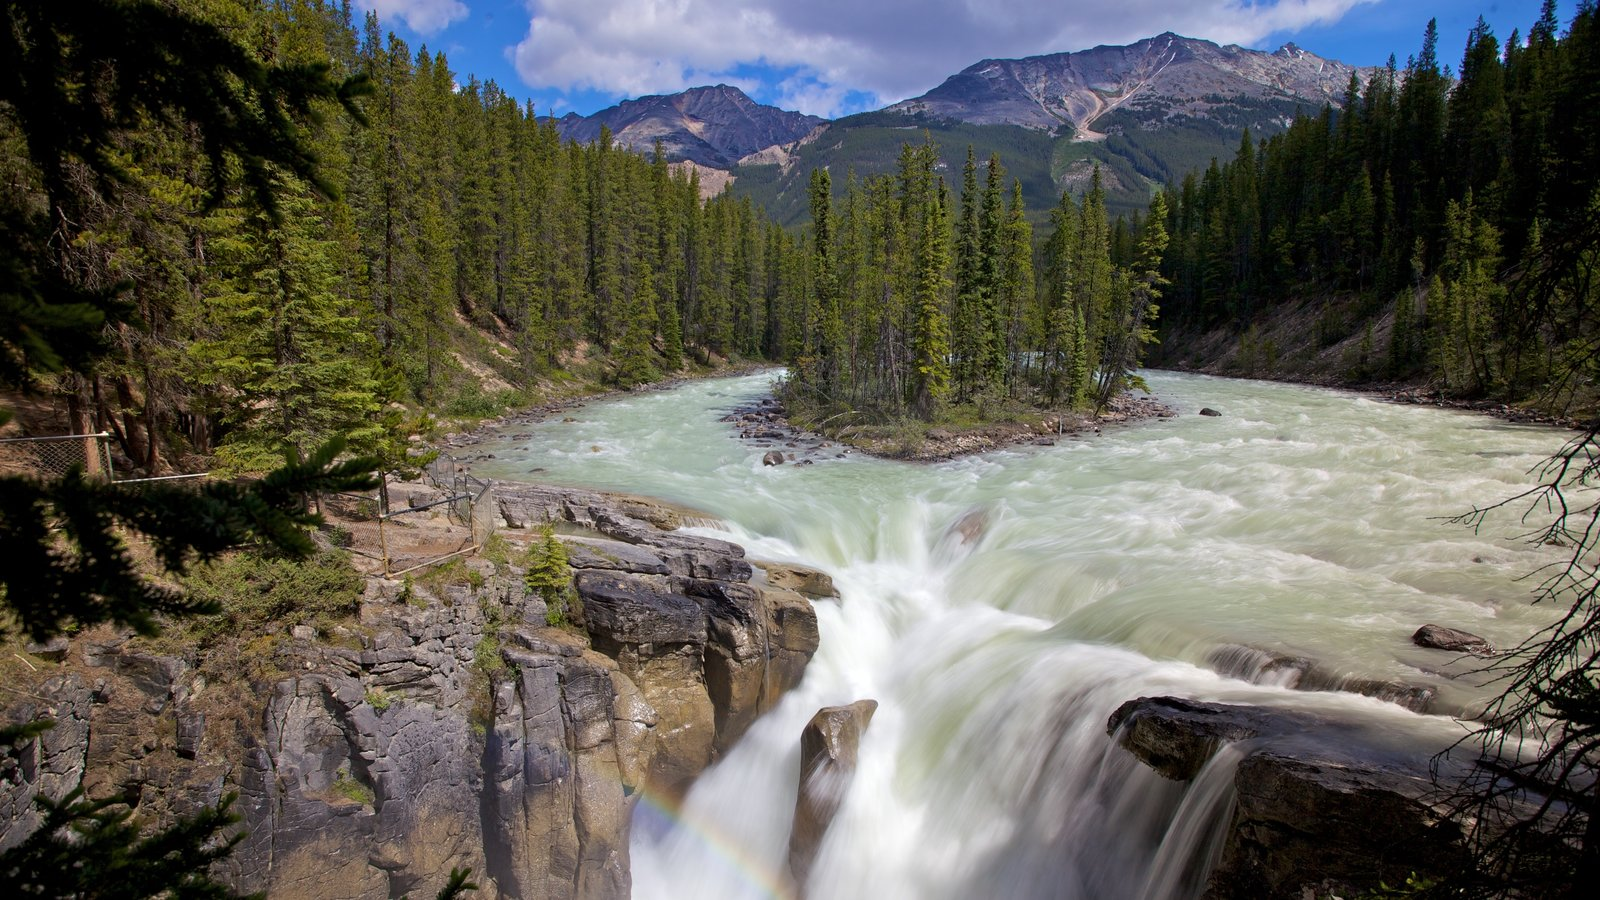 Sunwapta Falls showing forest scenes, landscape views and a waterfall